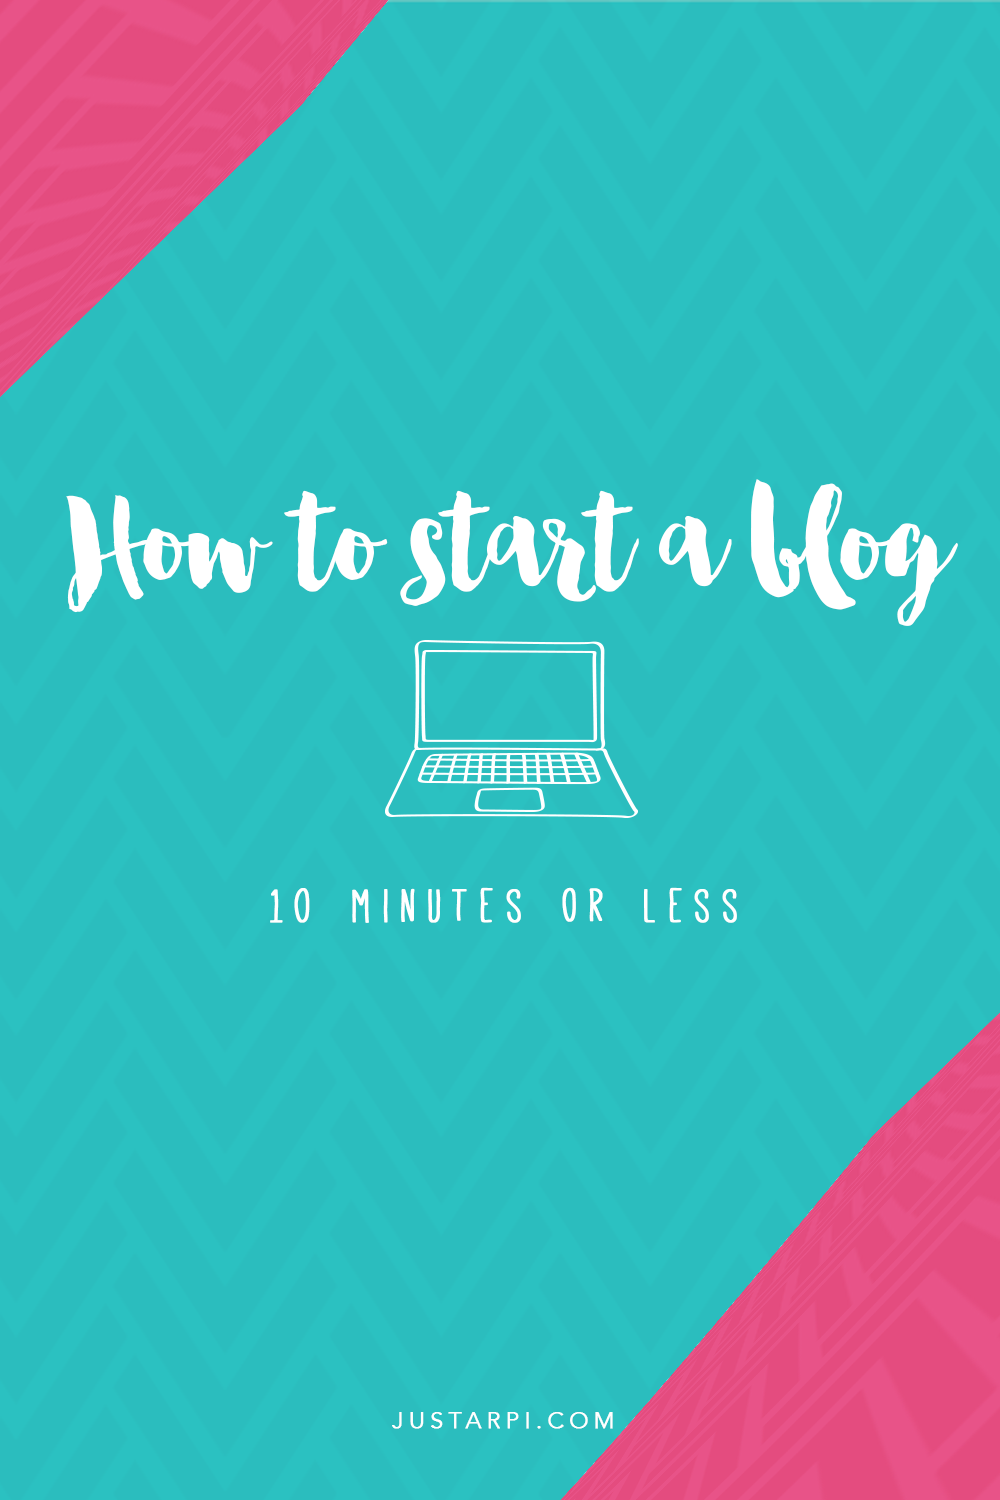 How-to-start-a-blog1.png